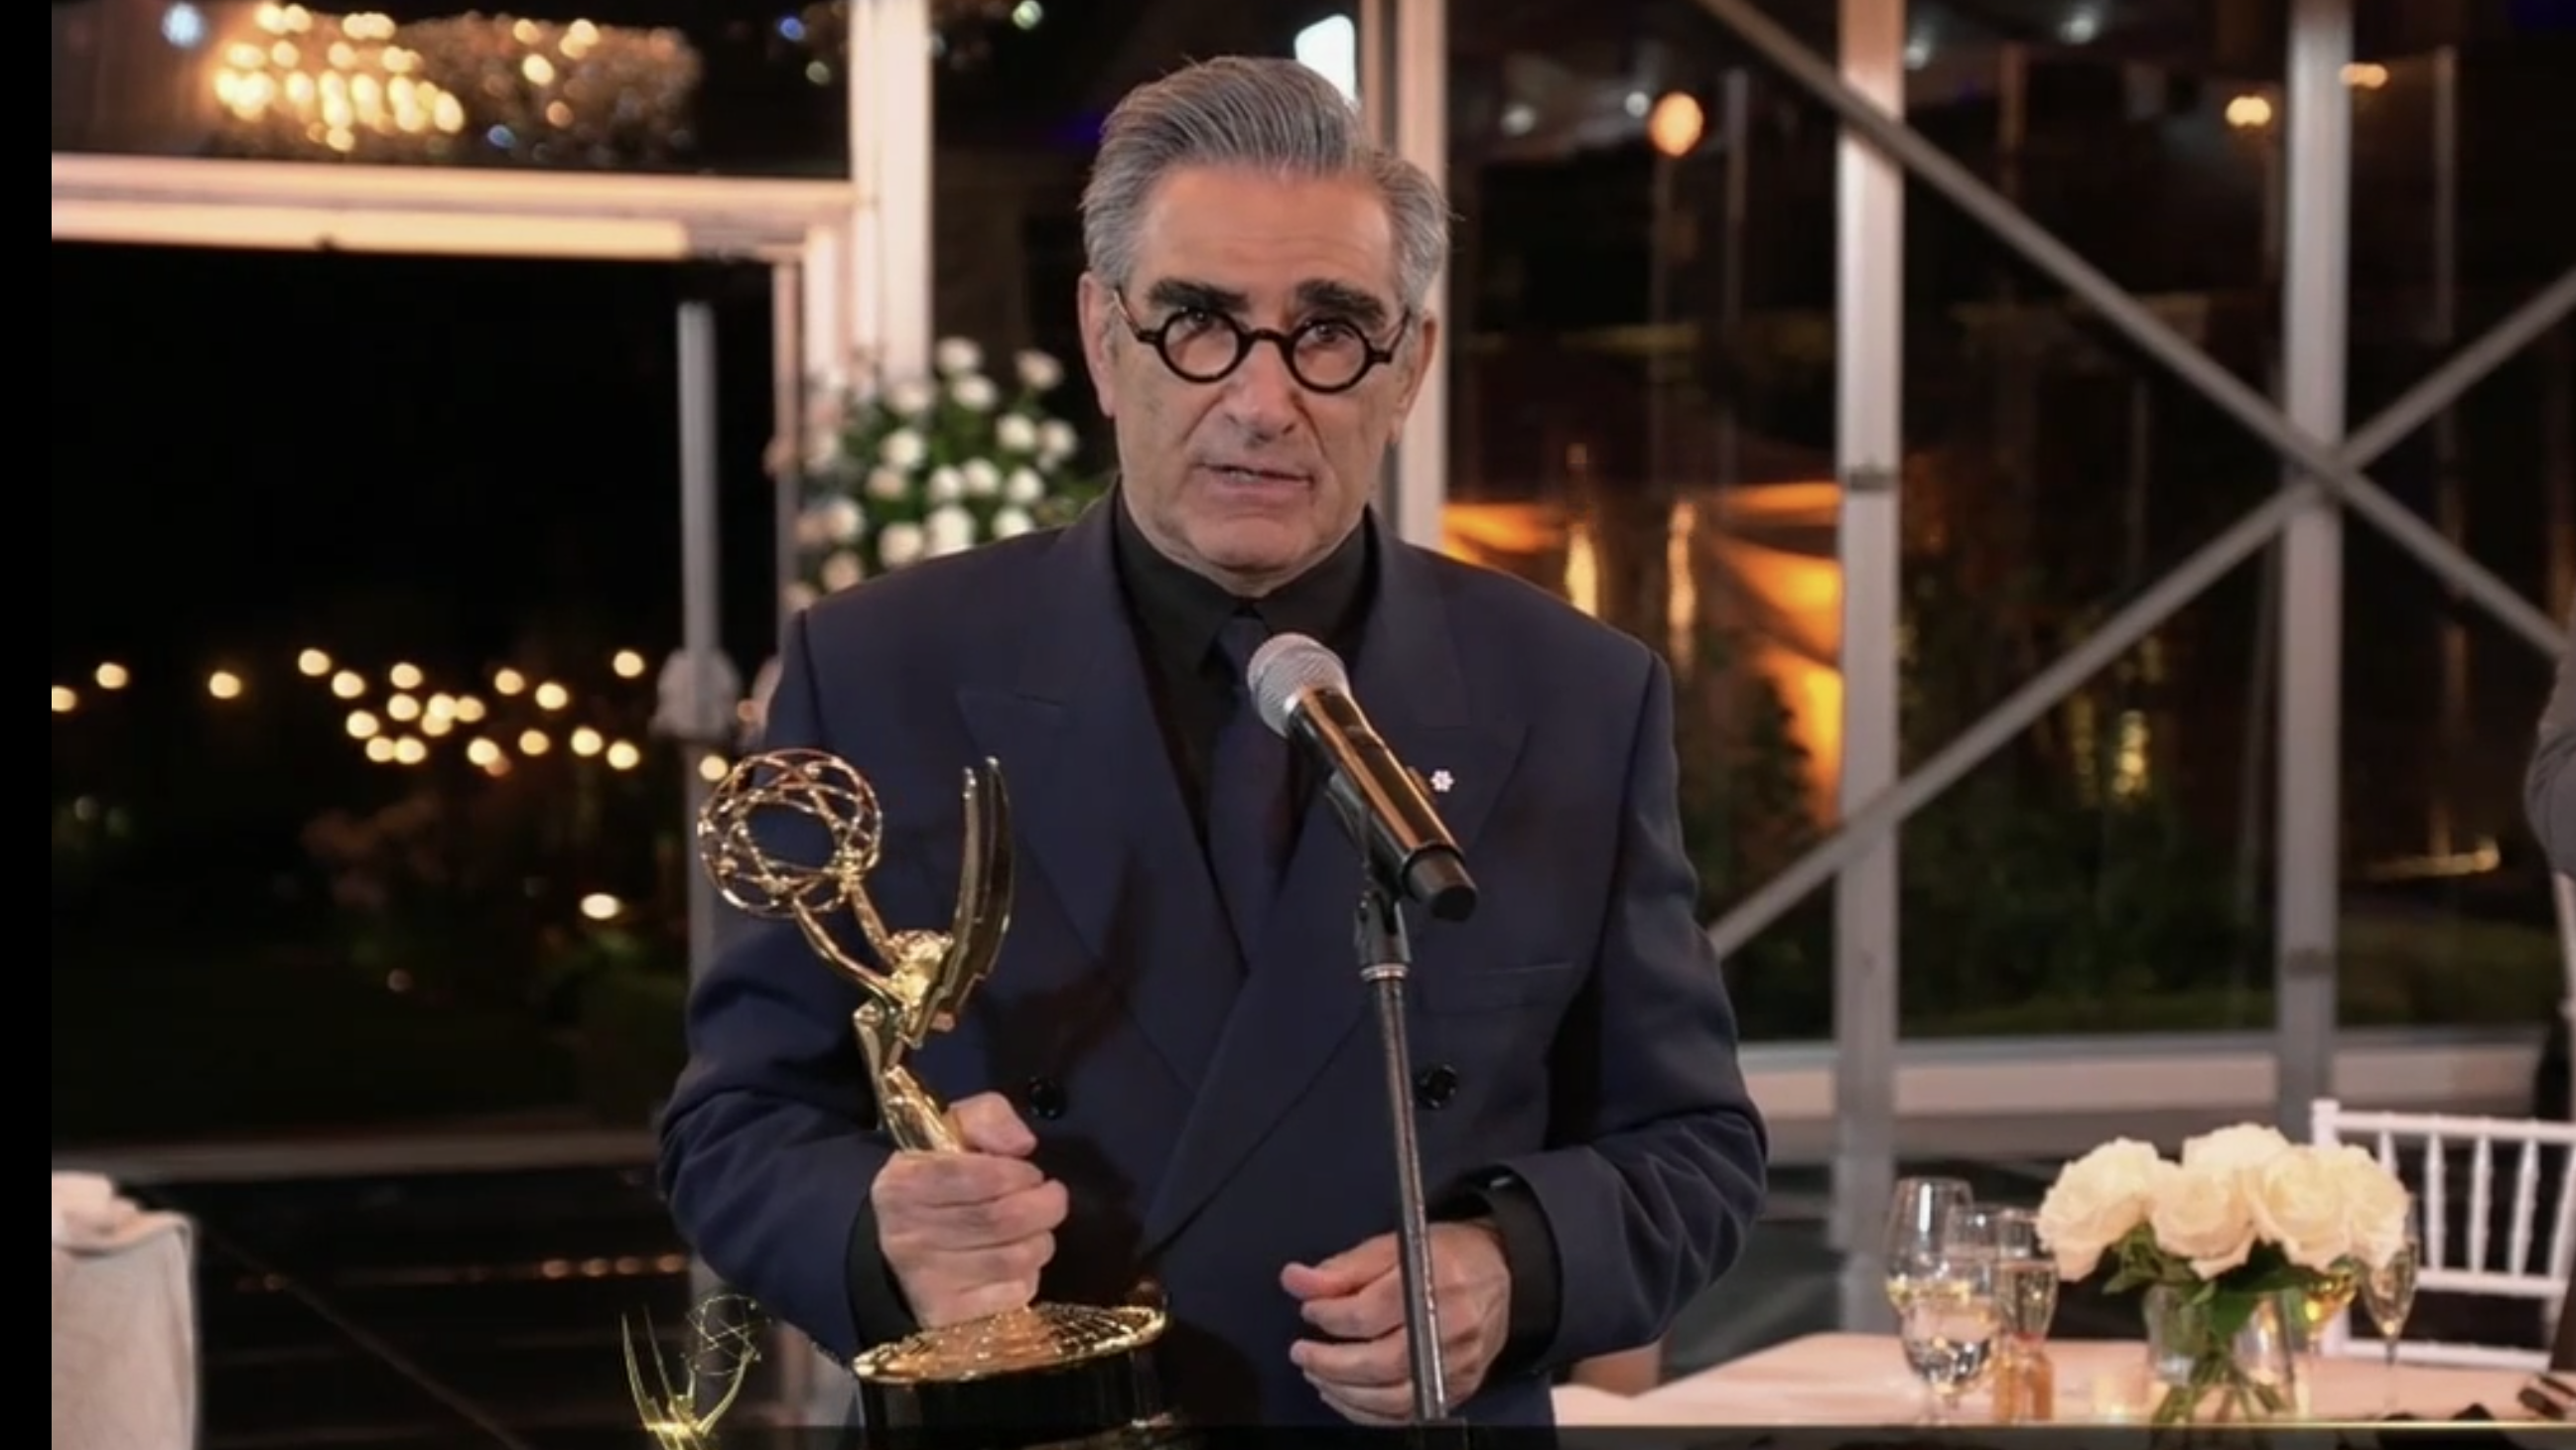 Schitt's Creek Creator Eugene Levy and Wife Ran a Tight Ship